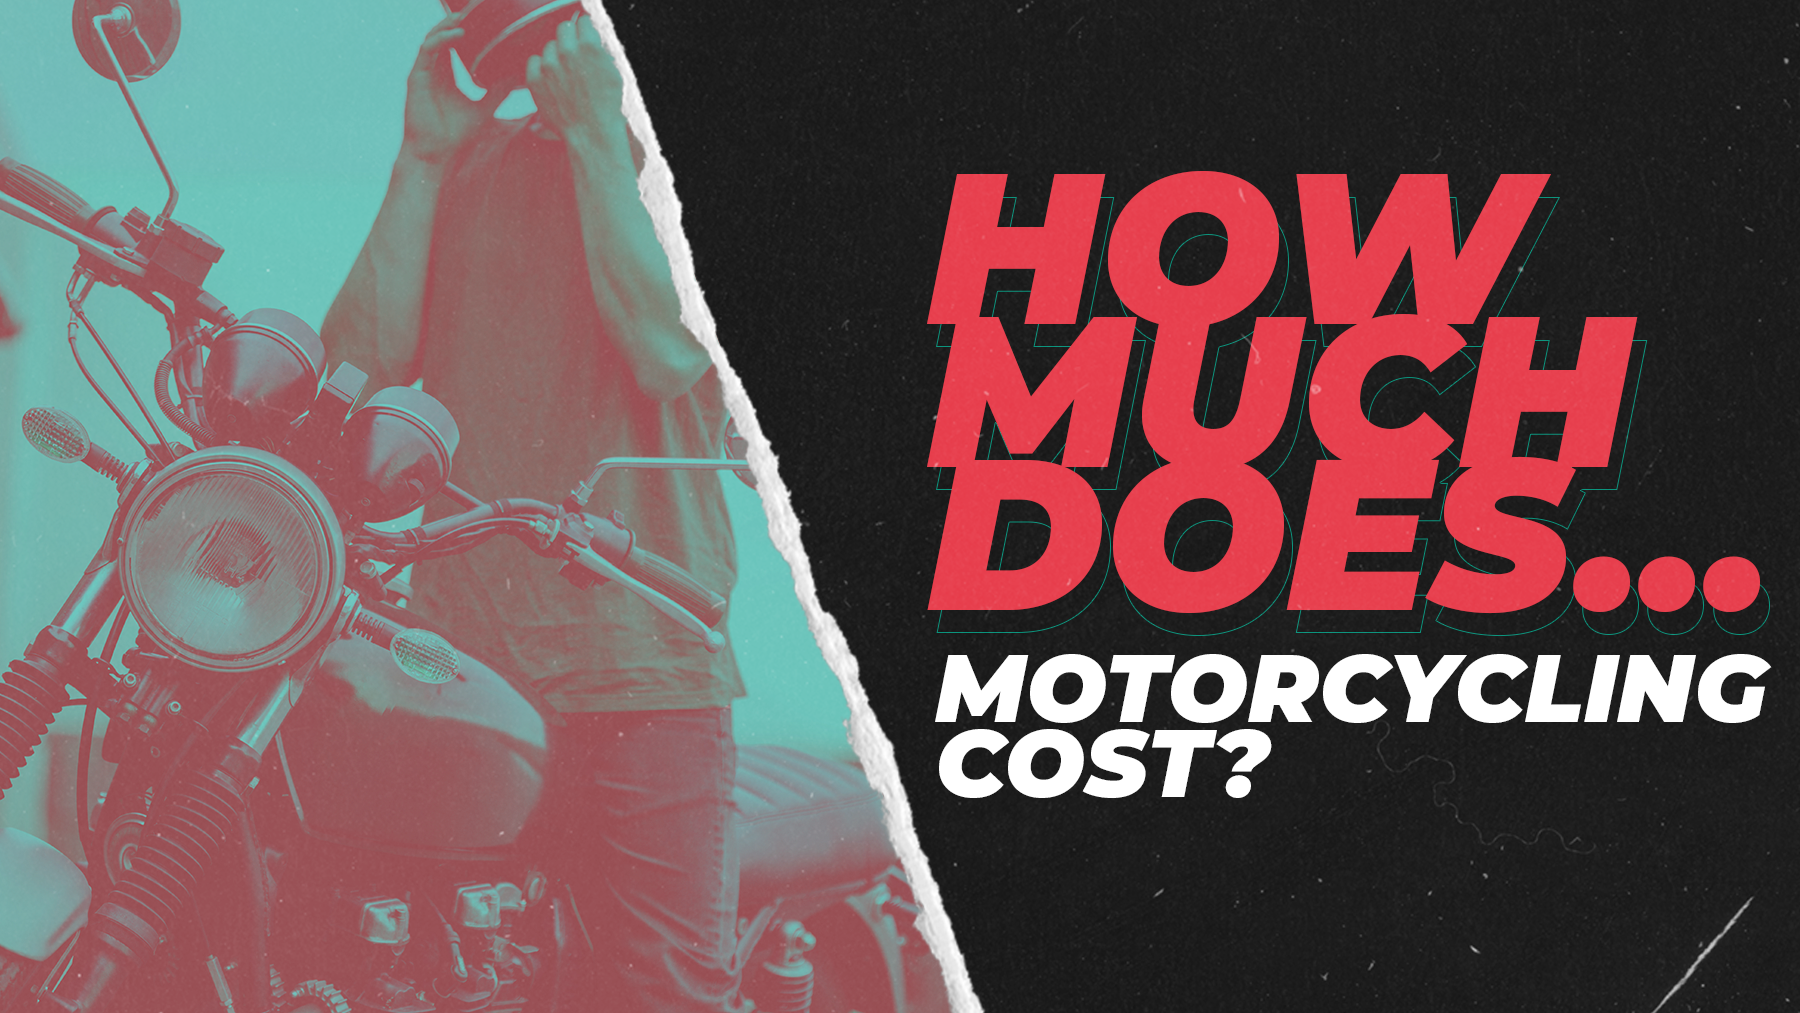 How Much Does Motorcycling Cost?